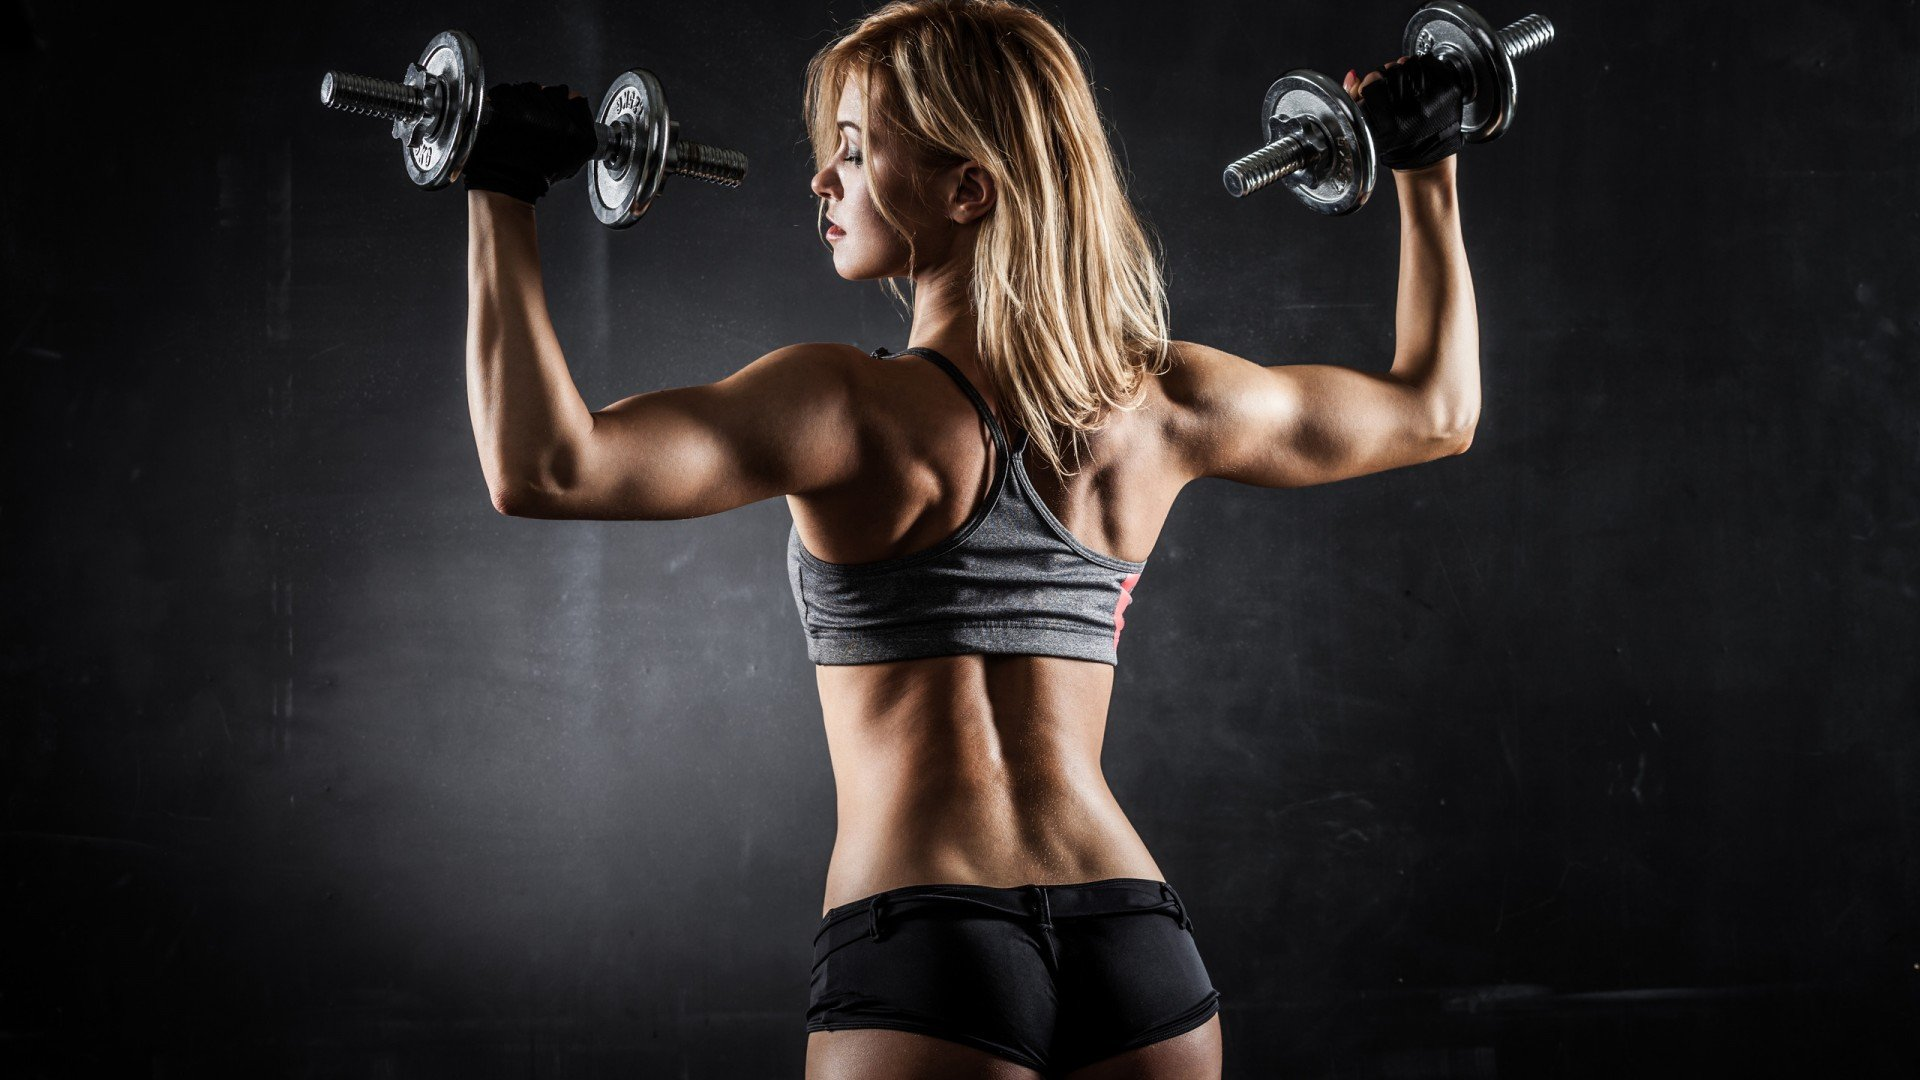 SPORTS - girl fitness exercise weight bodybuilding